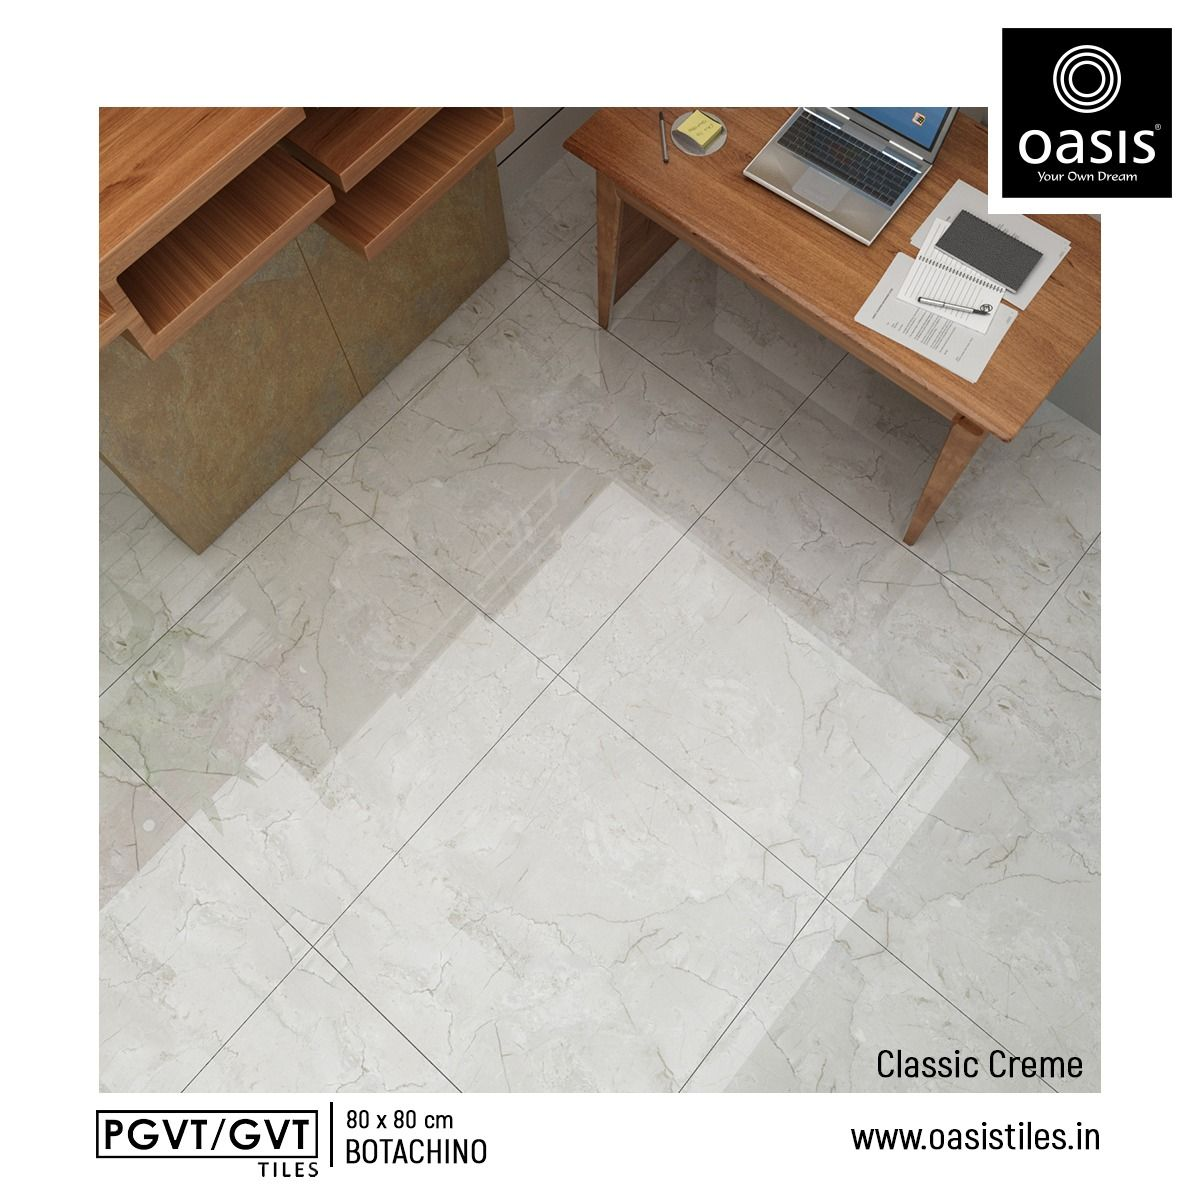 Pin by Oasis Tiles India on Perfect PGVT/GVT Tiles